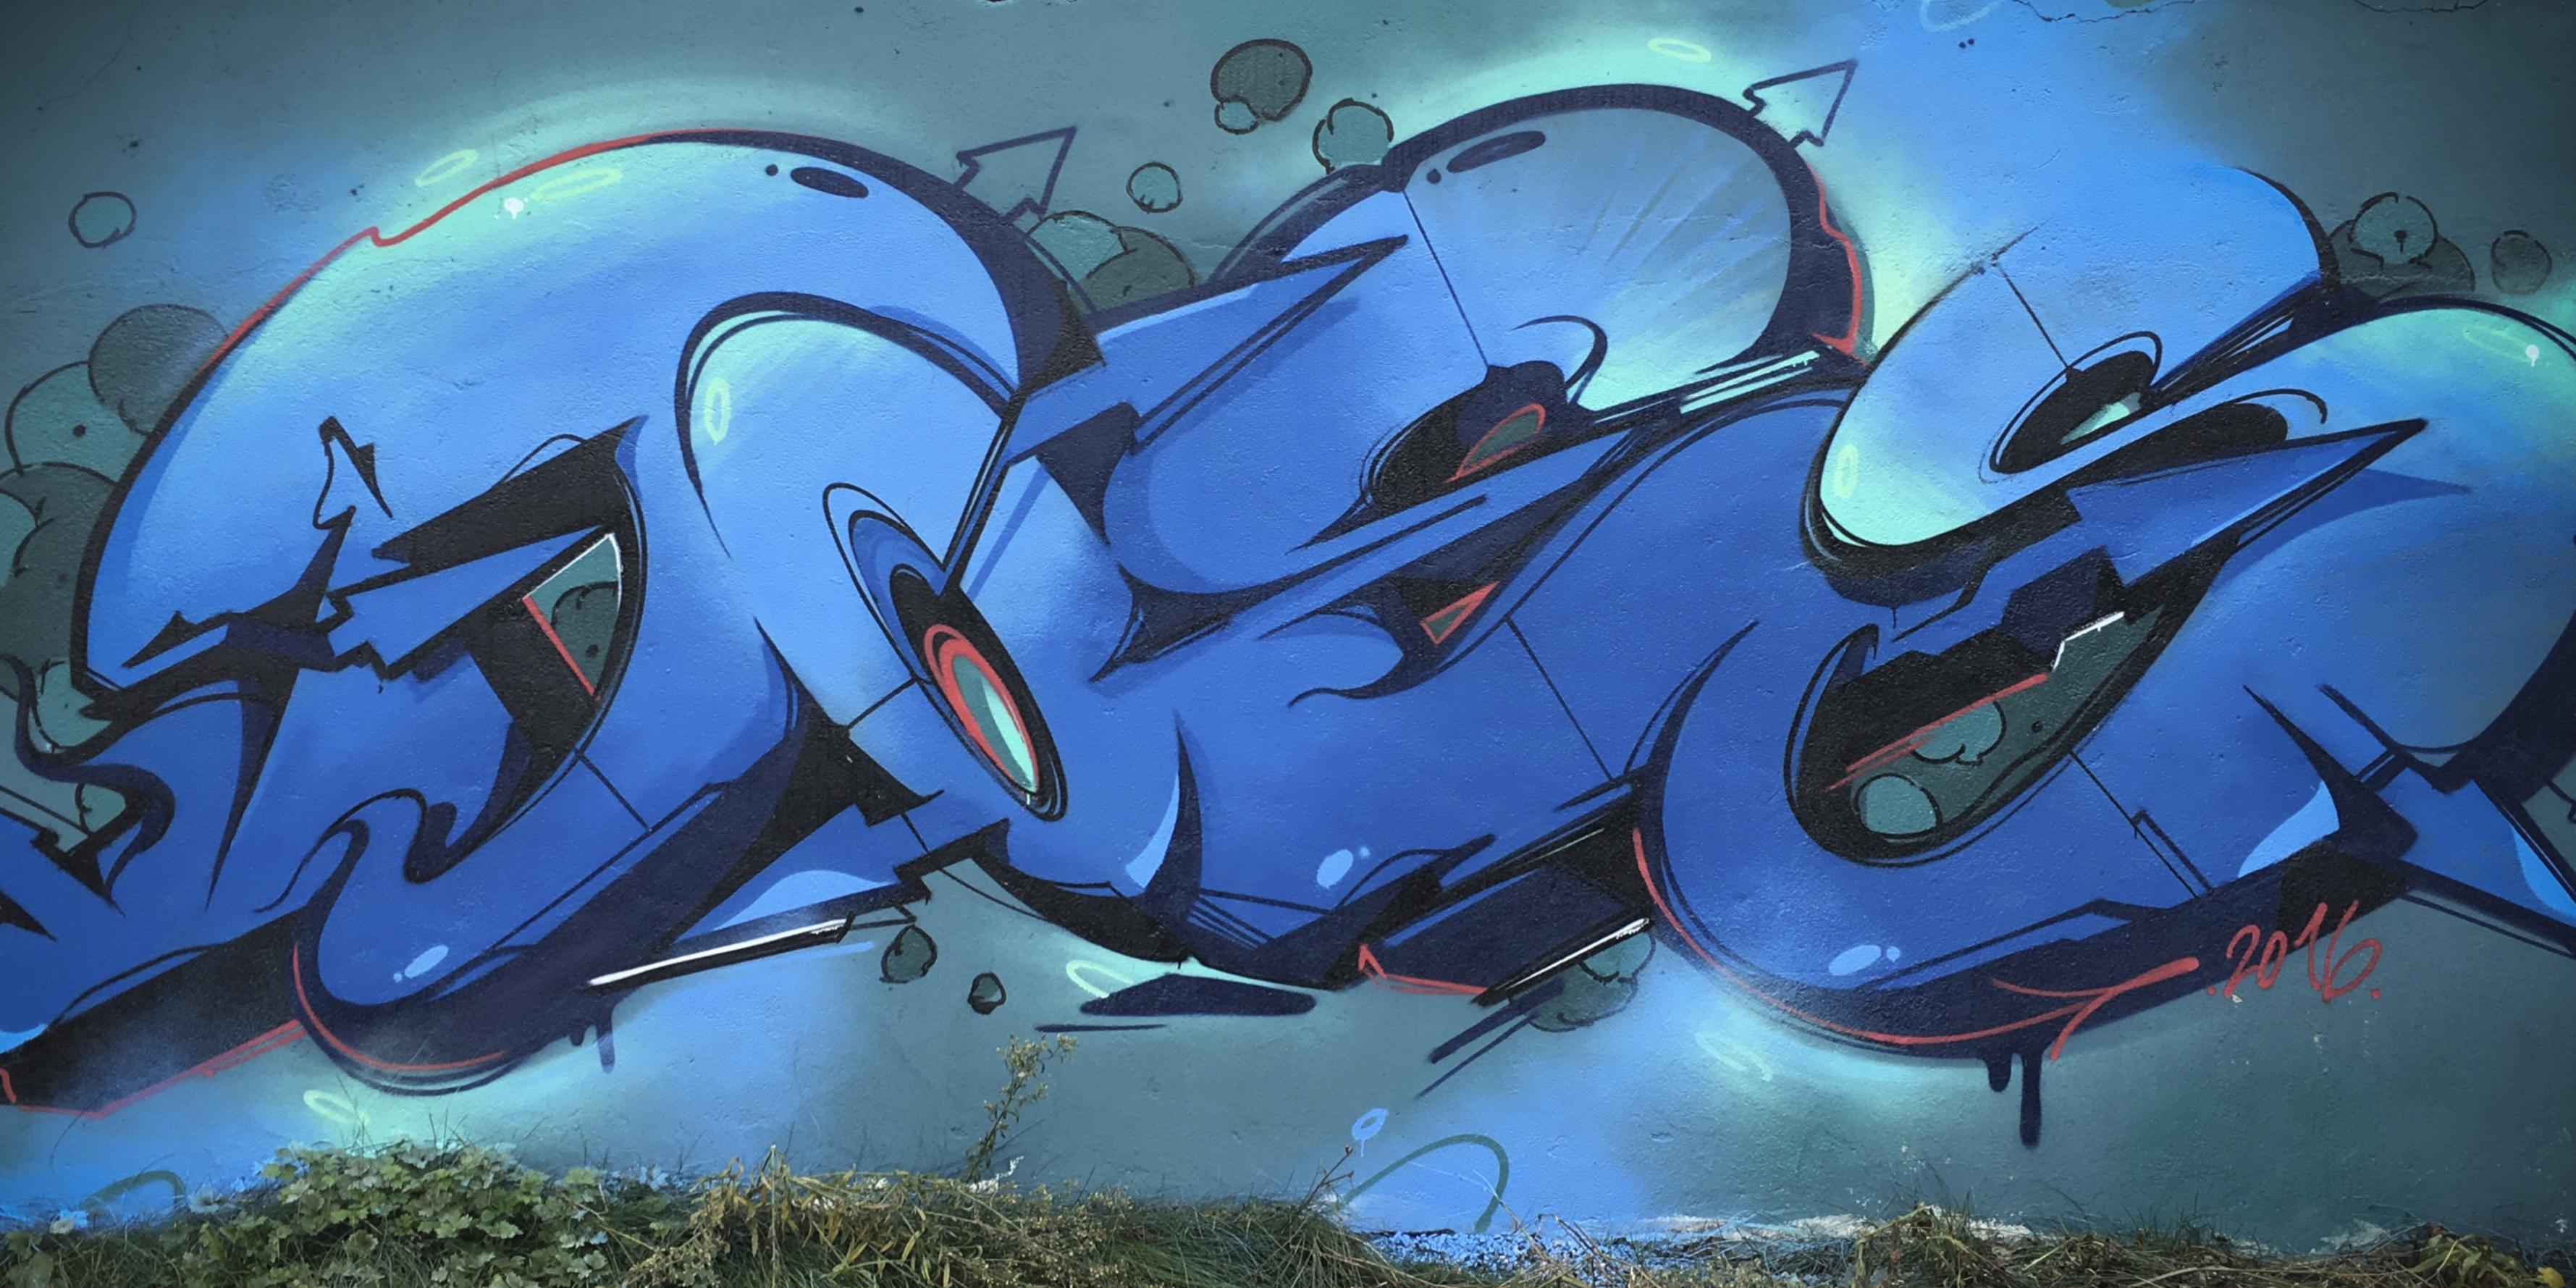 A work by Does - Blue monday mural heerlen the netherlands 1